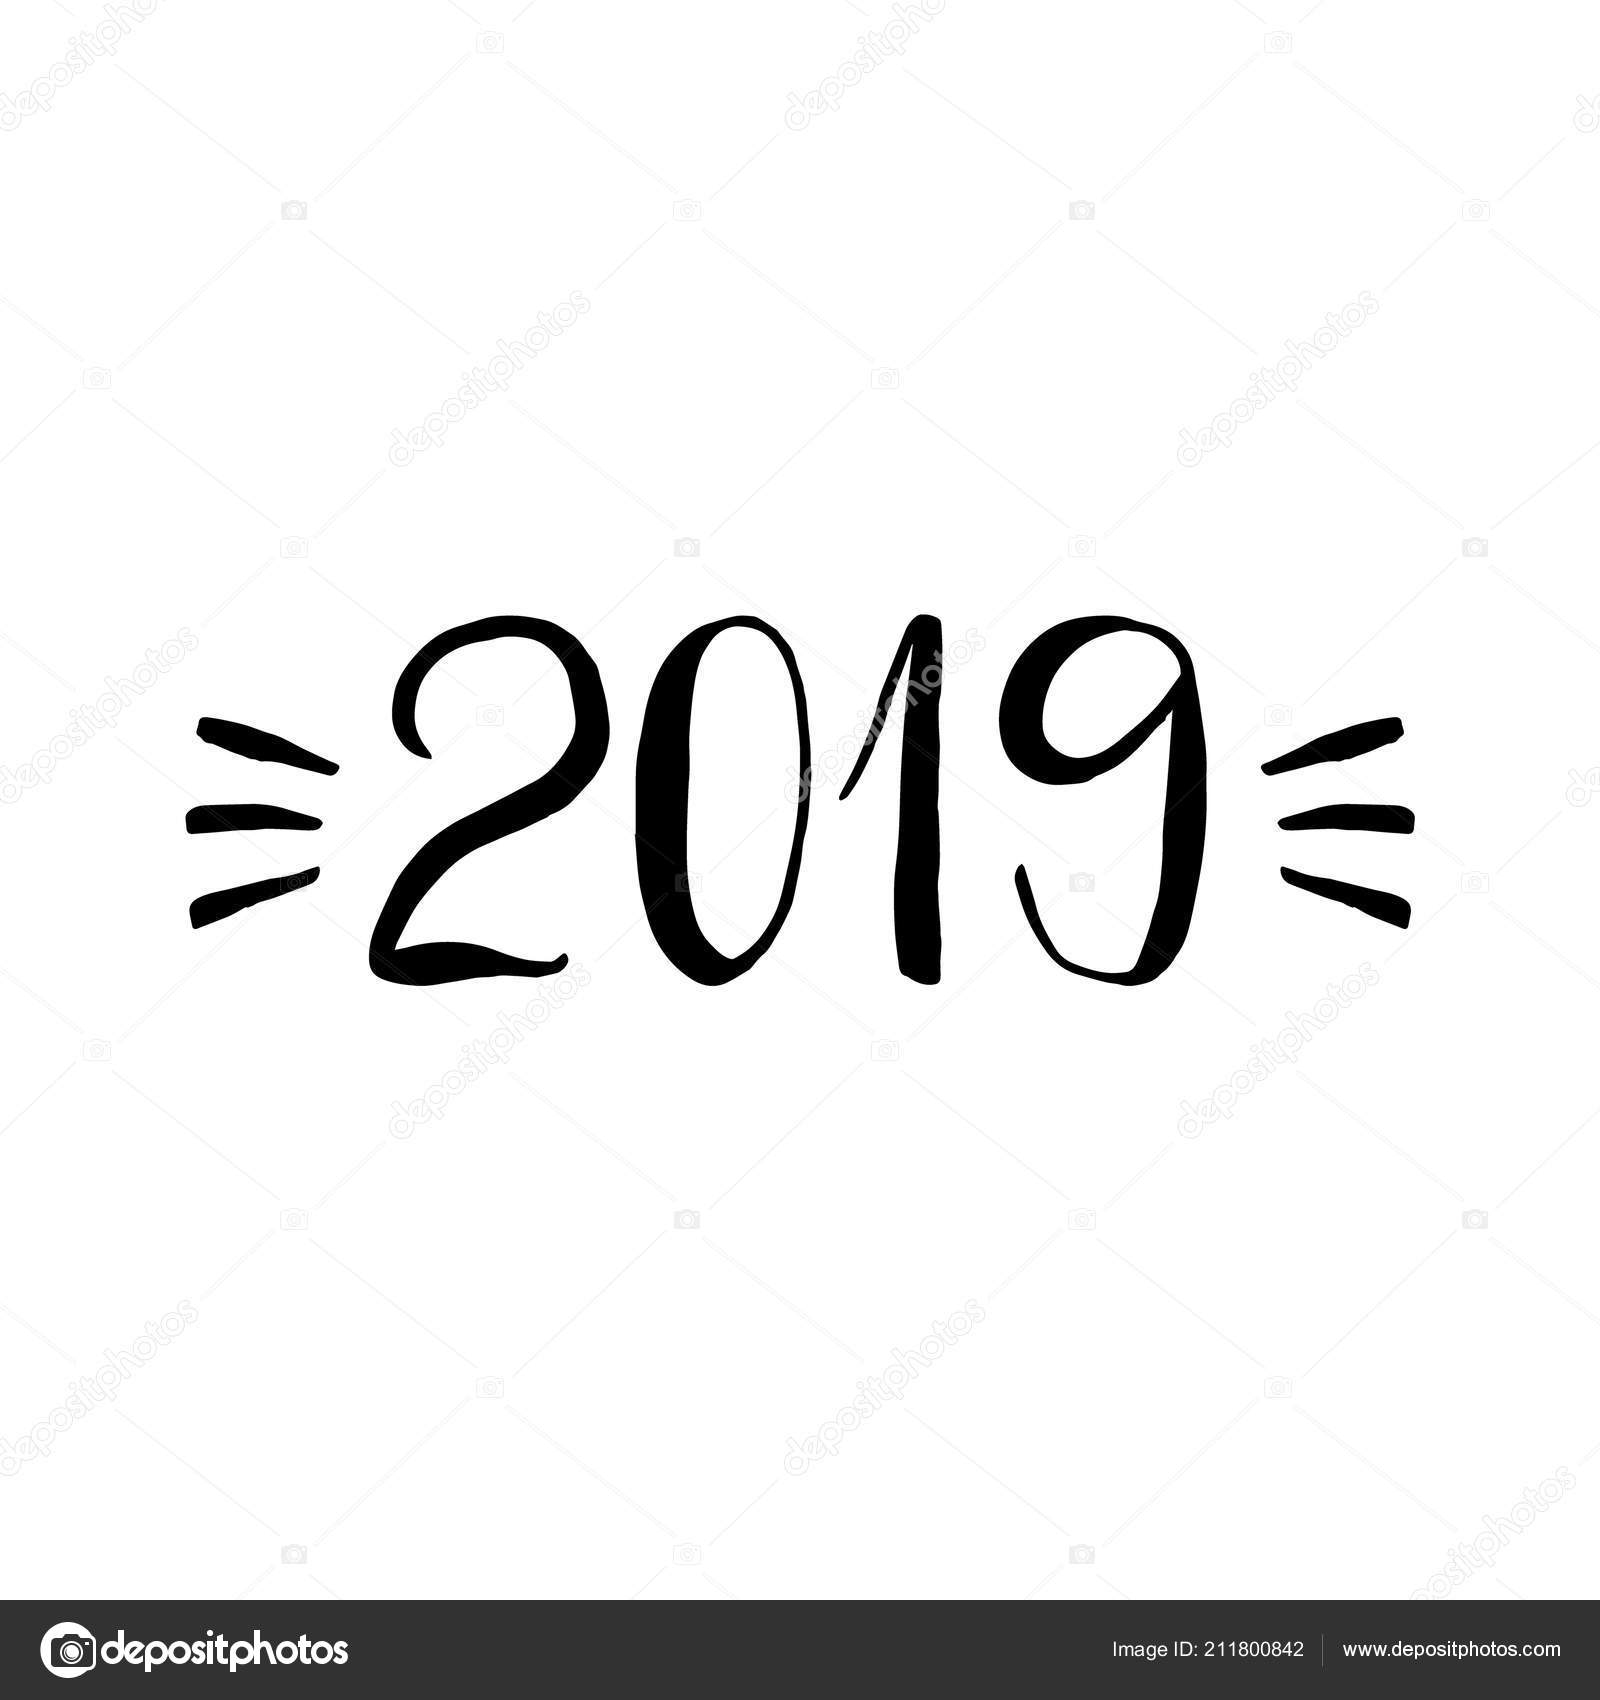 2019 Font: New Year 2019 Lettering Hand Drawn Design Elements